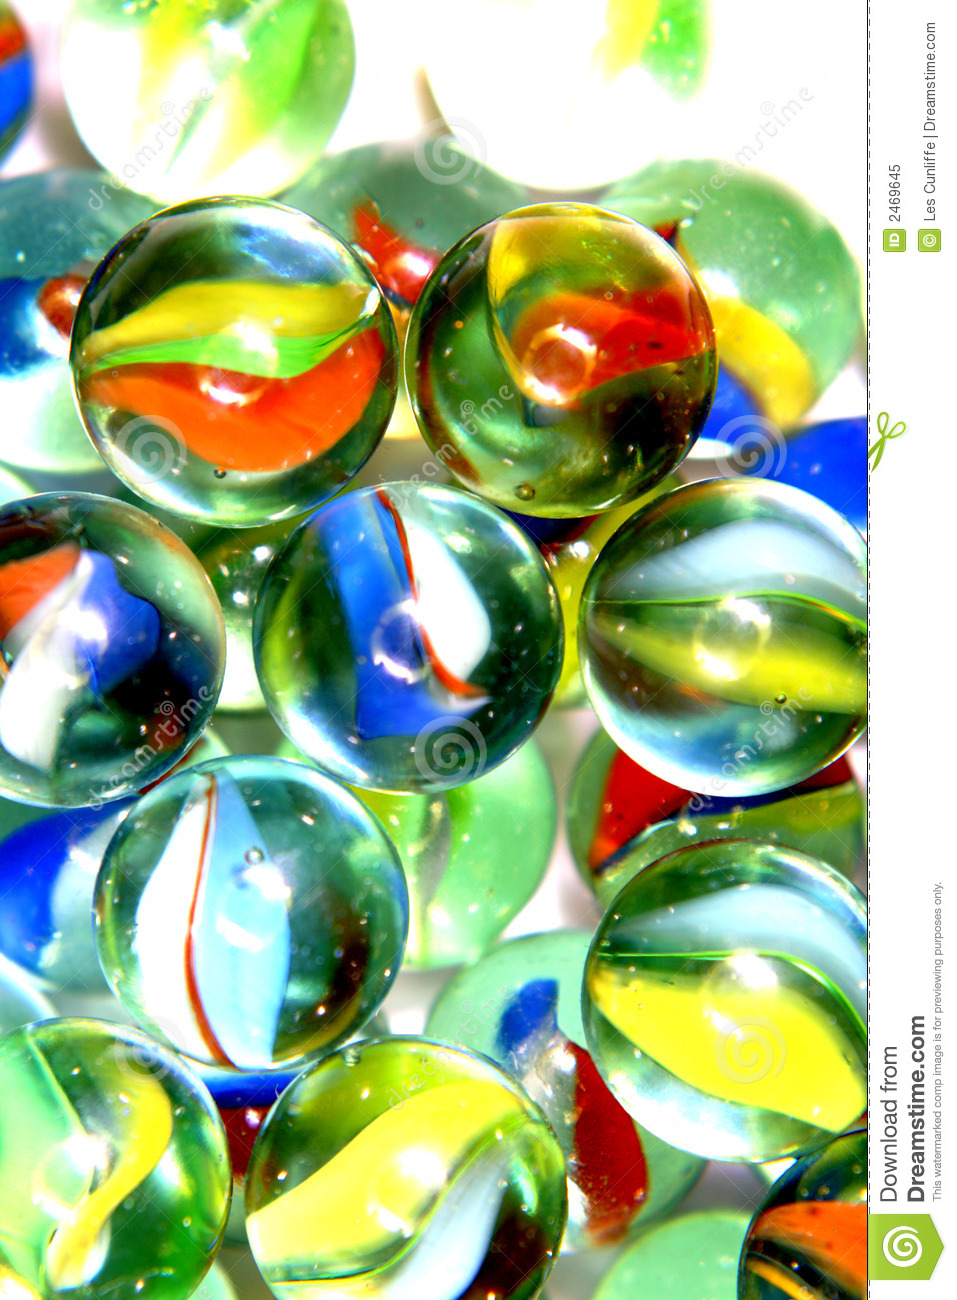 Bright Colored Marbles : Brightly colored marbles stock image of colorful